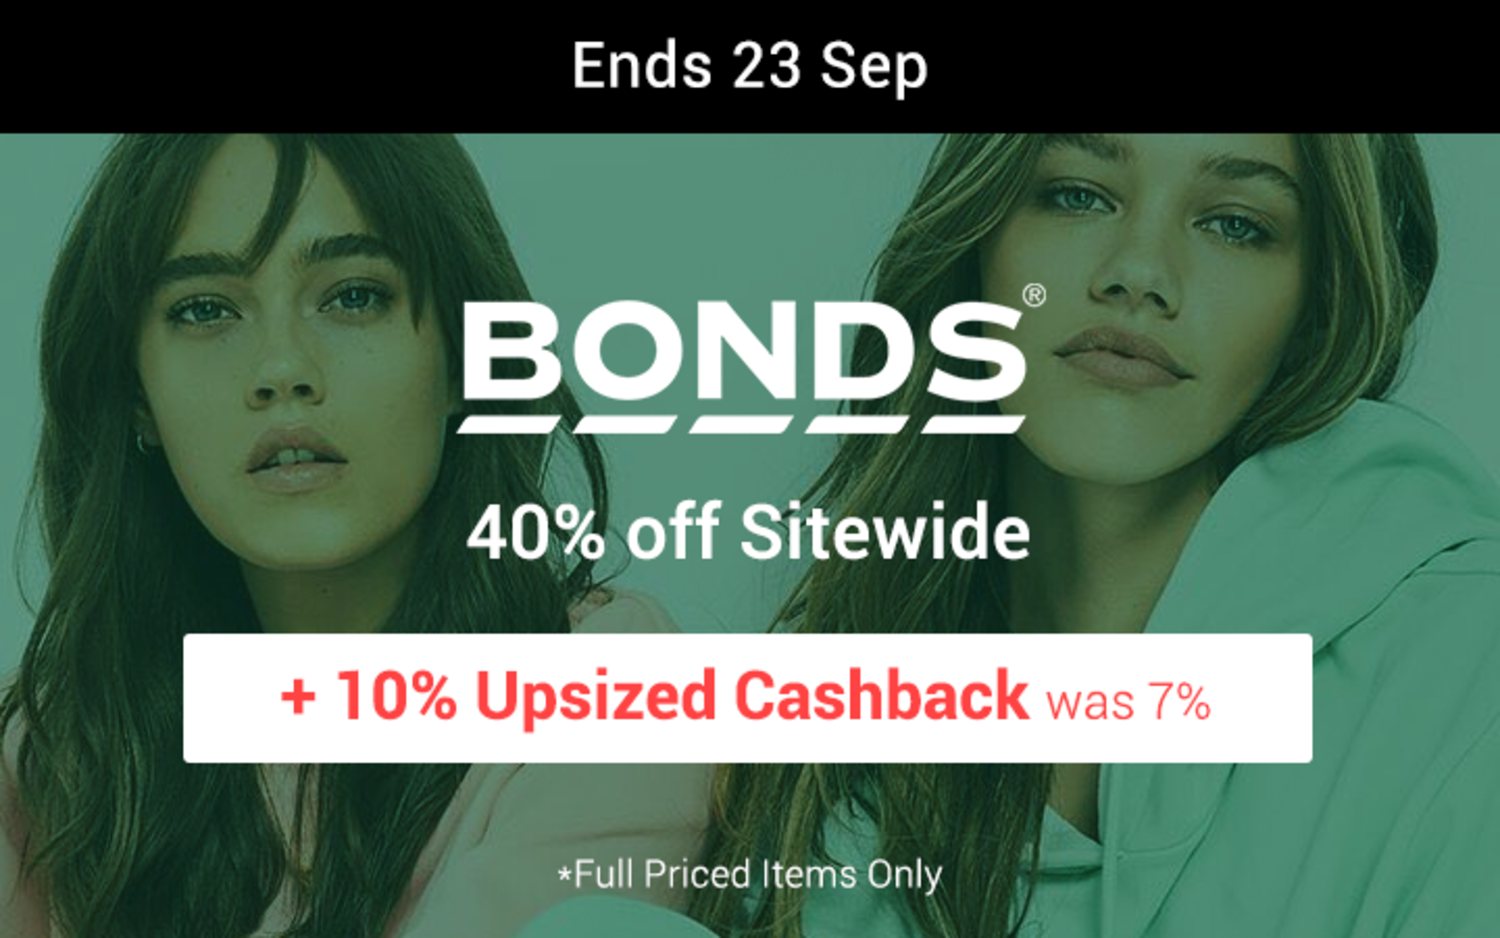 Bonds - 40% off Sitewide